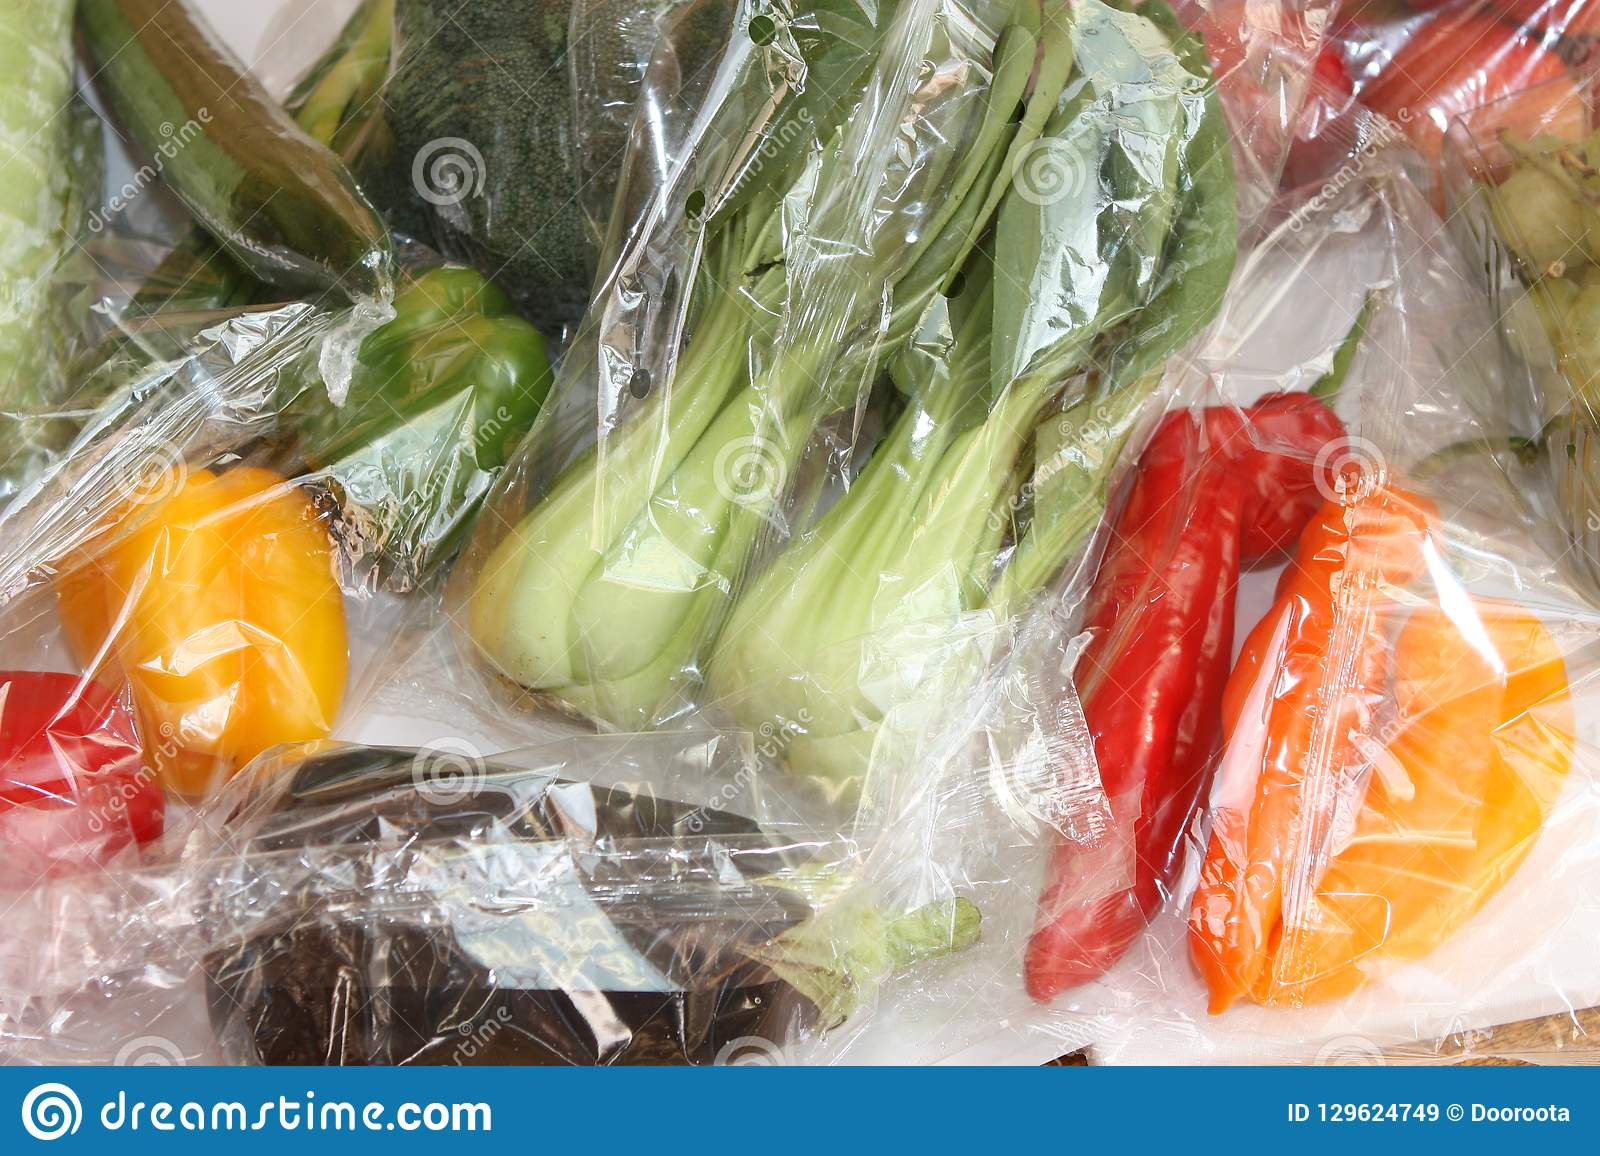 Fresh Raw Food In Plastic Bags  Stock Image - Image of nature